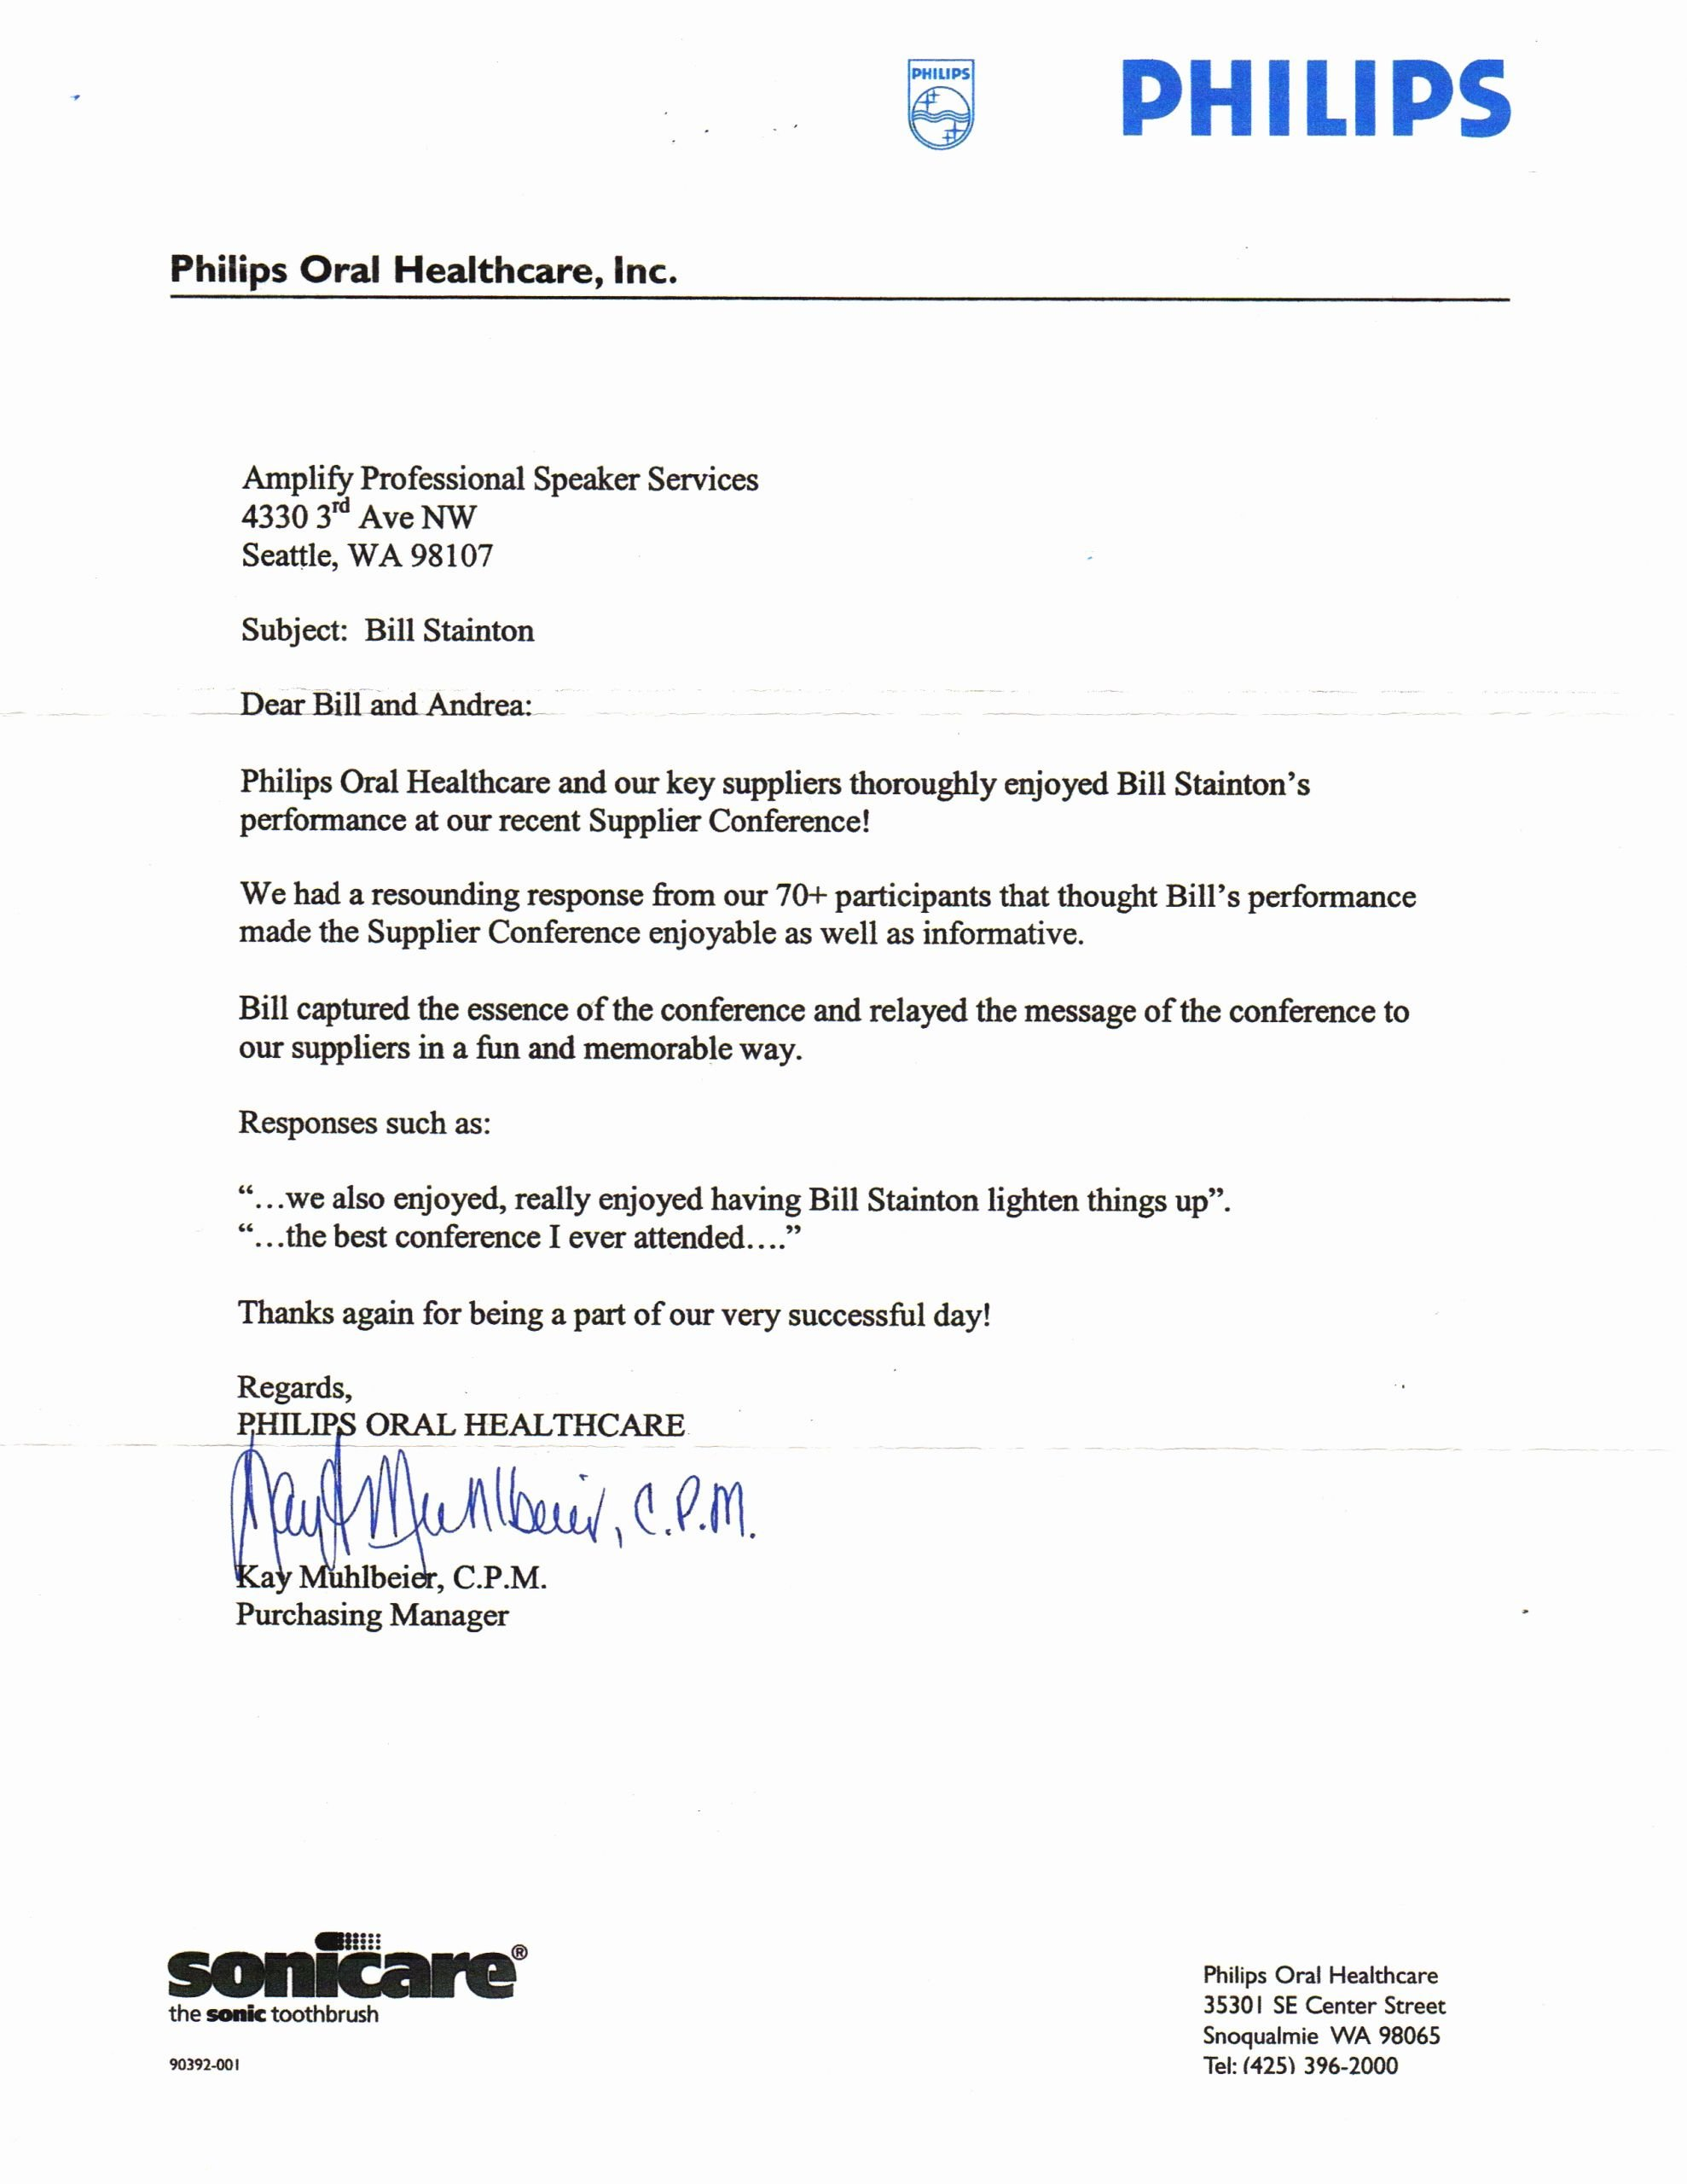 Letters Of Testimony Sample Elegant Philips Testimonial Letter the Executive Producer